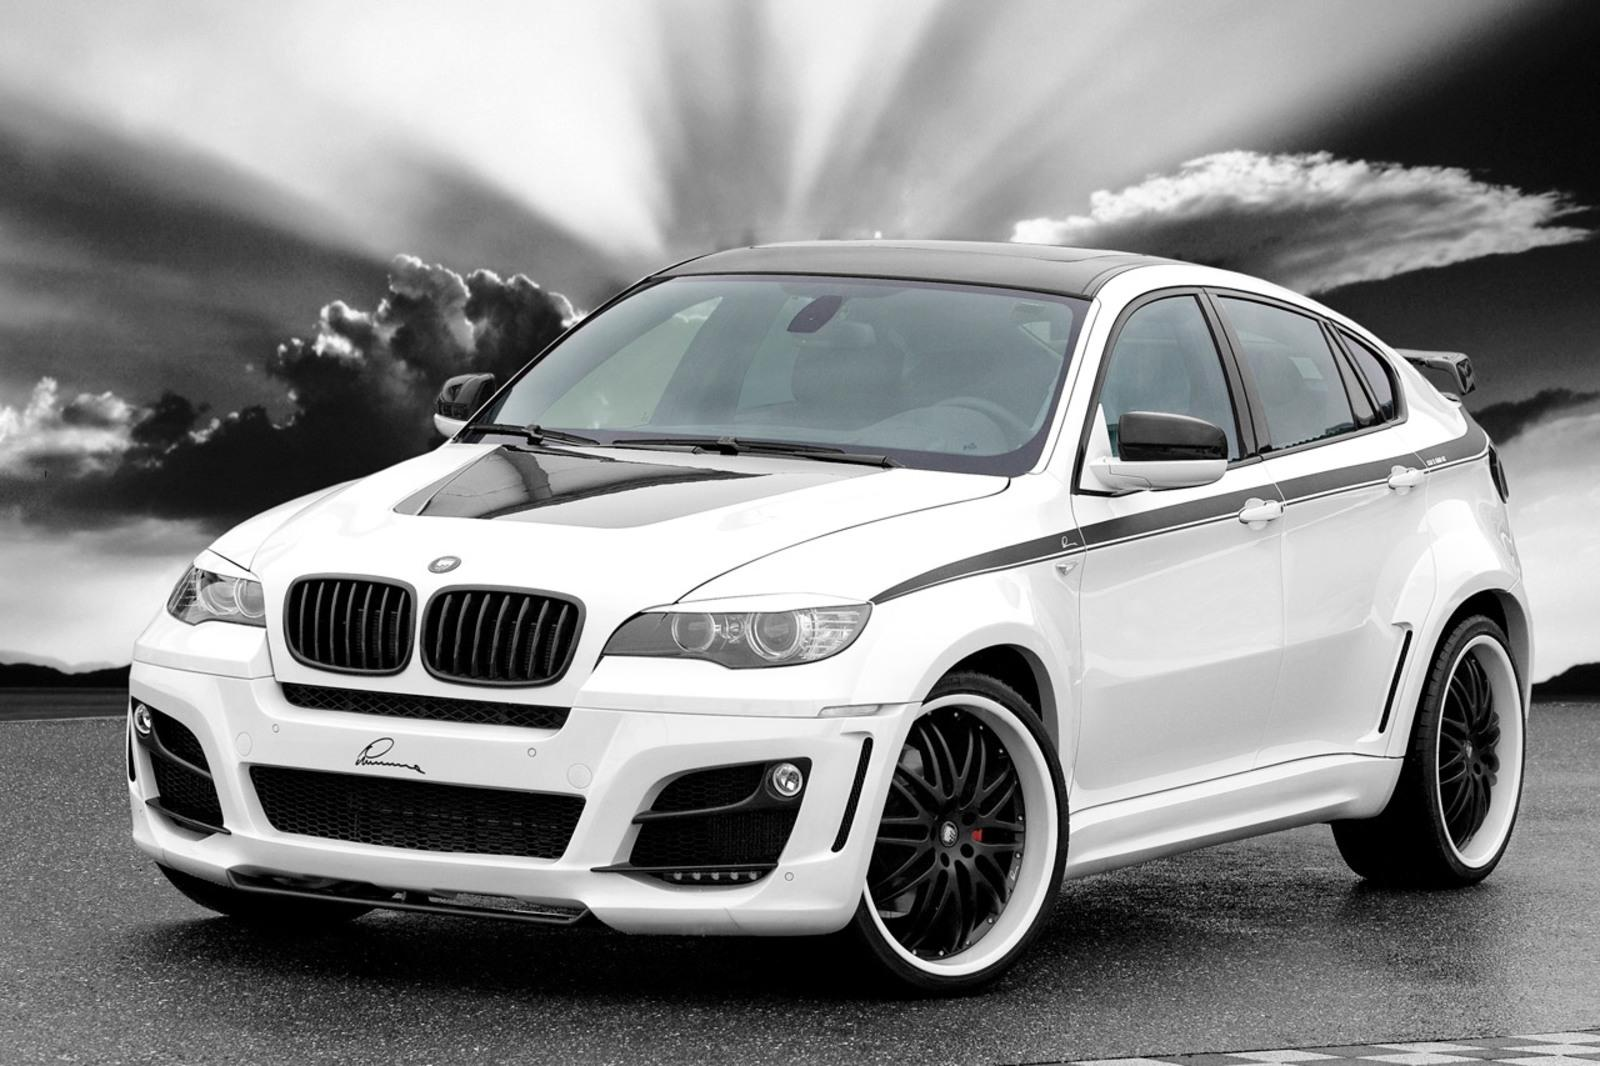 lumma clr x 650 gt based on the bmw x6 news top speed. Black Bedroom Furniture Sets. Home Design Ideas